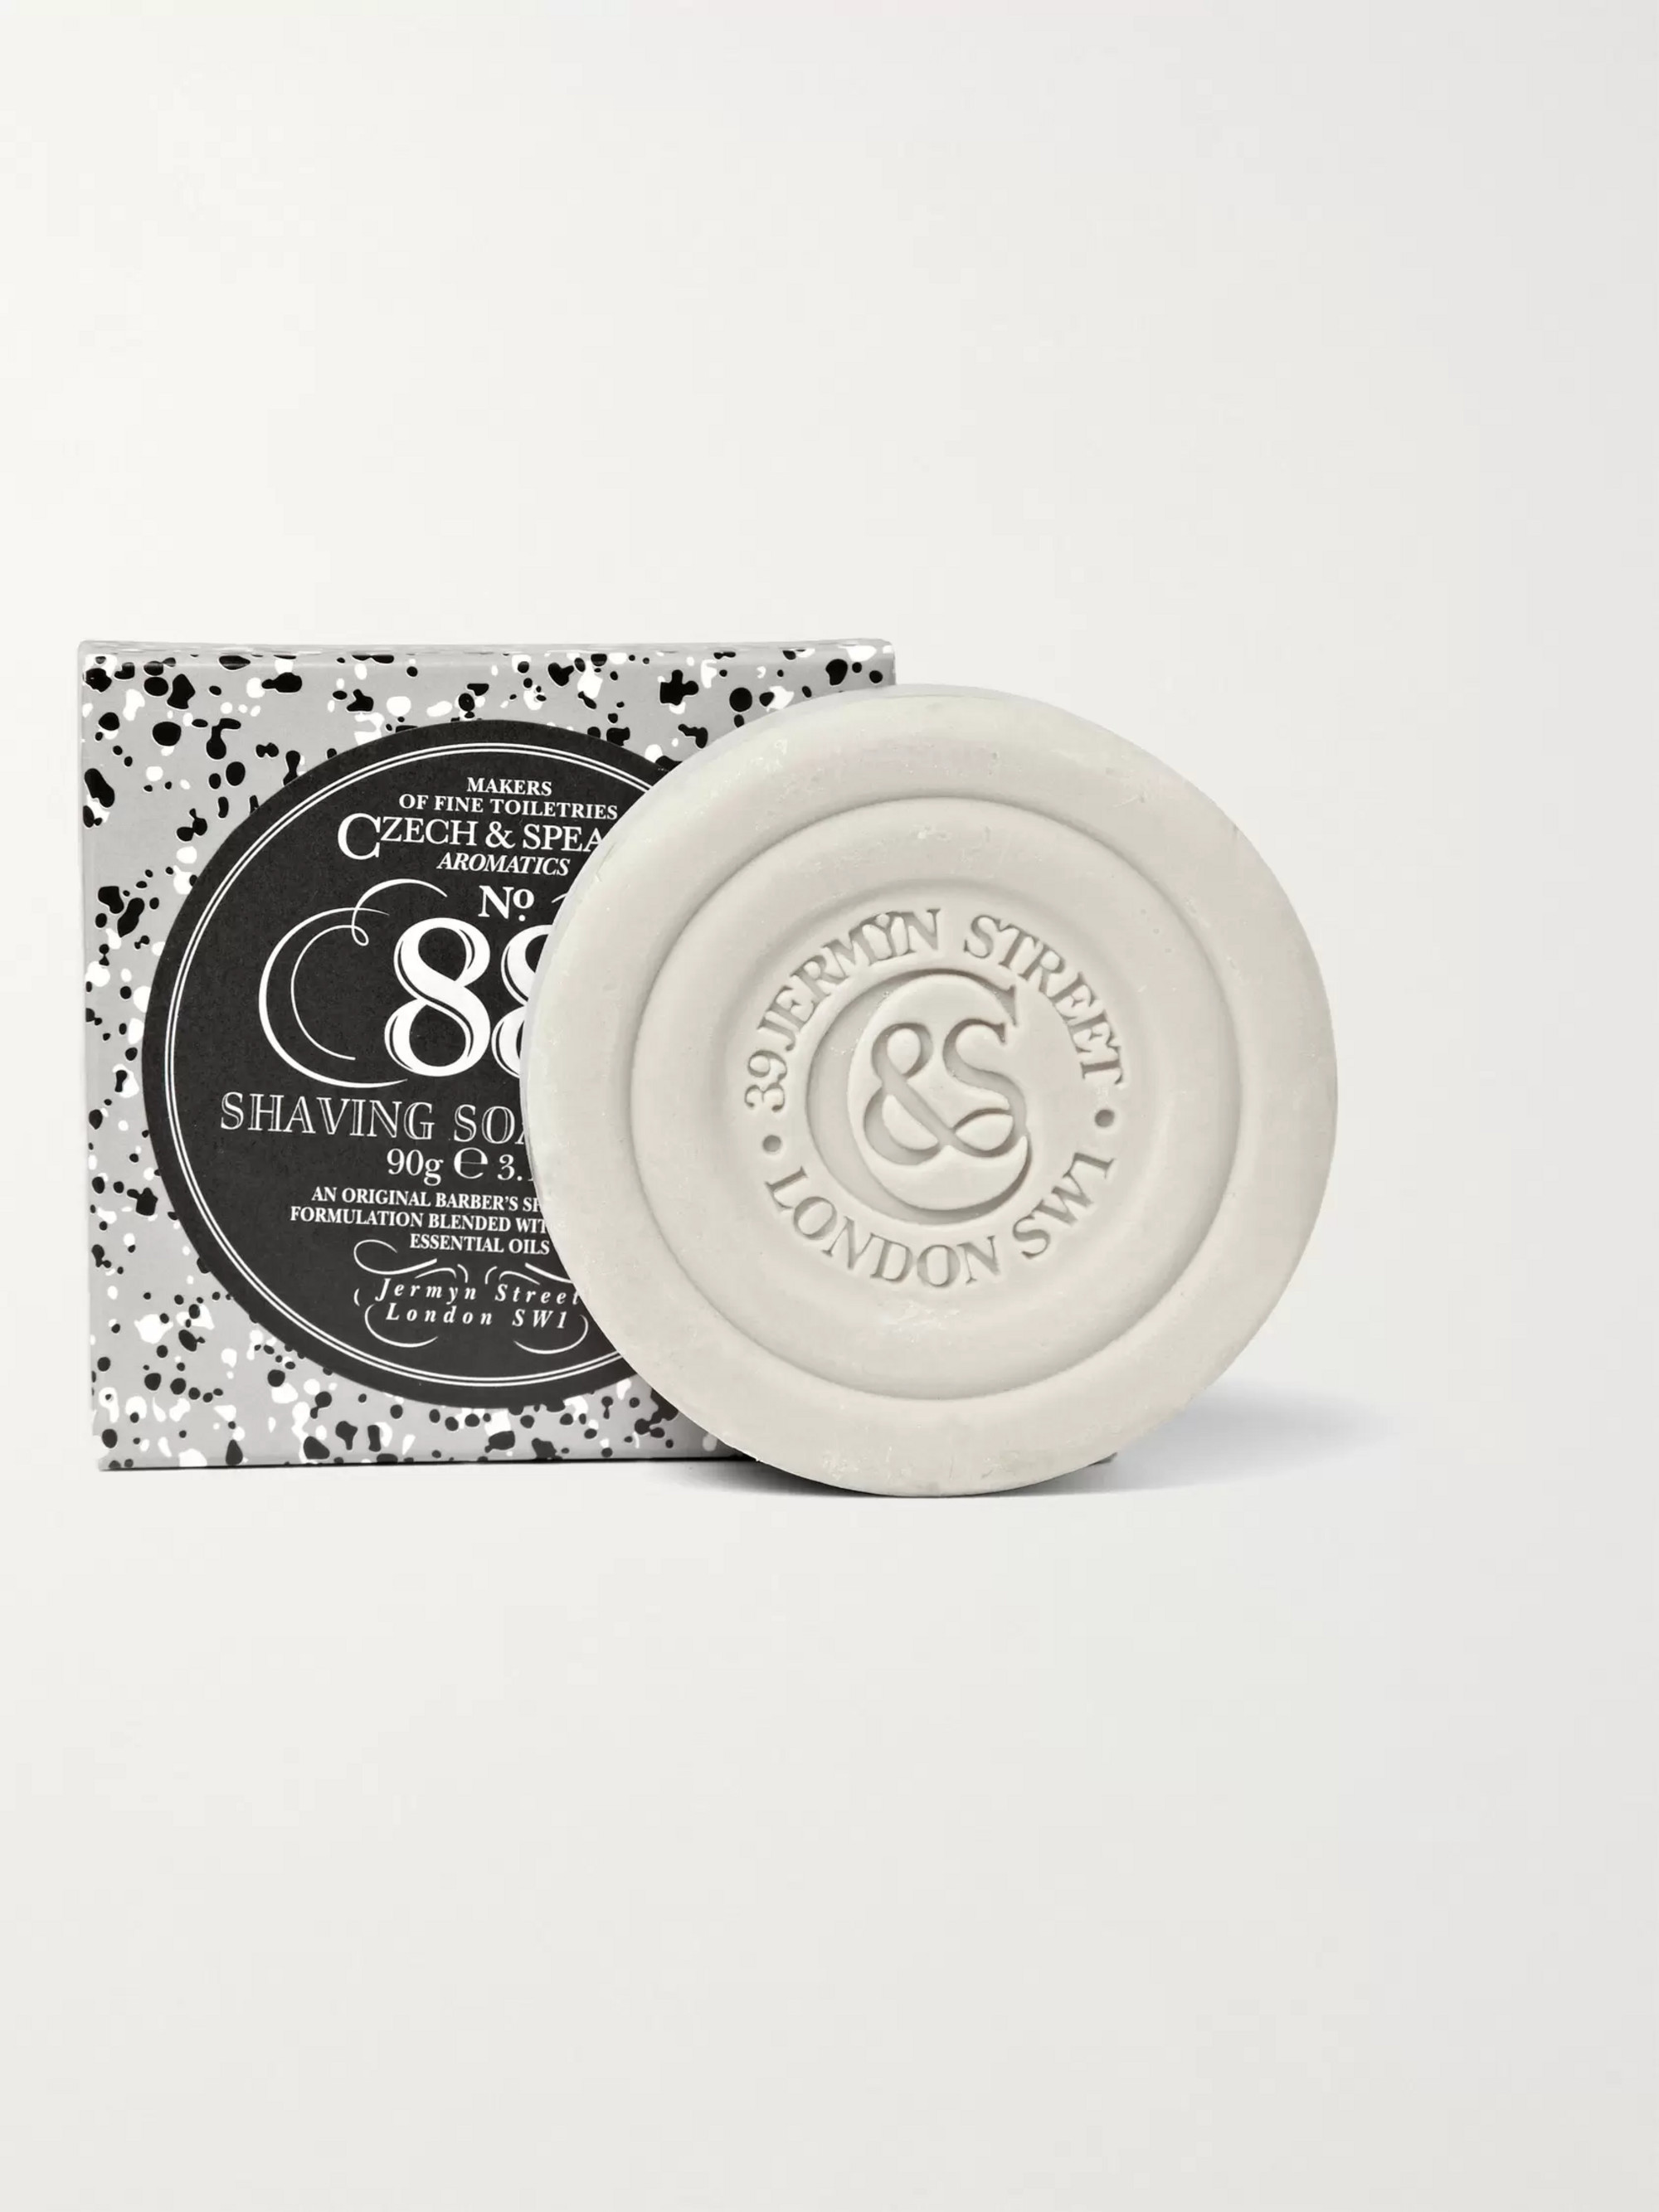 Czech & Speake No. 88 Shaving Soap Refill, 90g